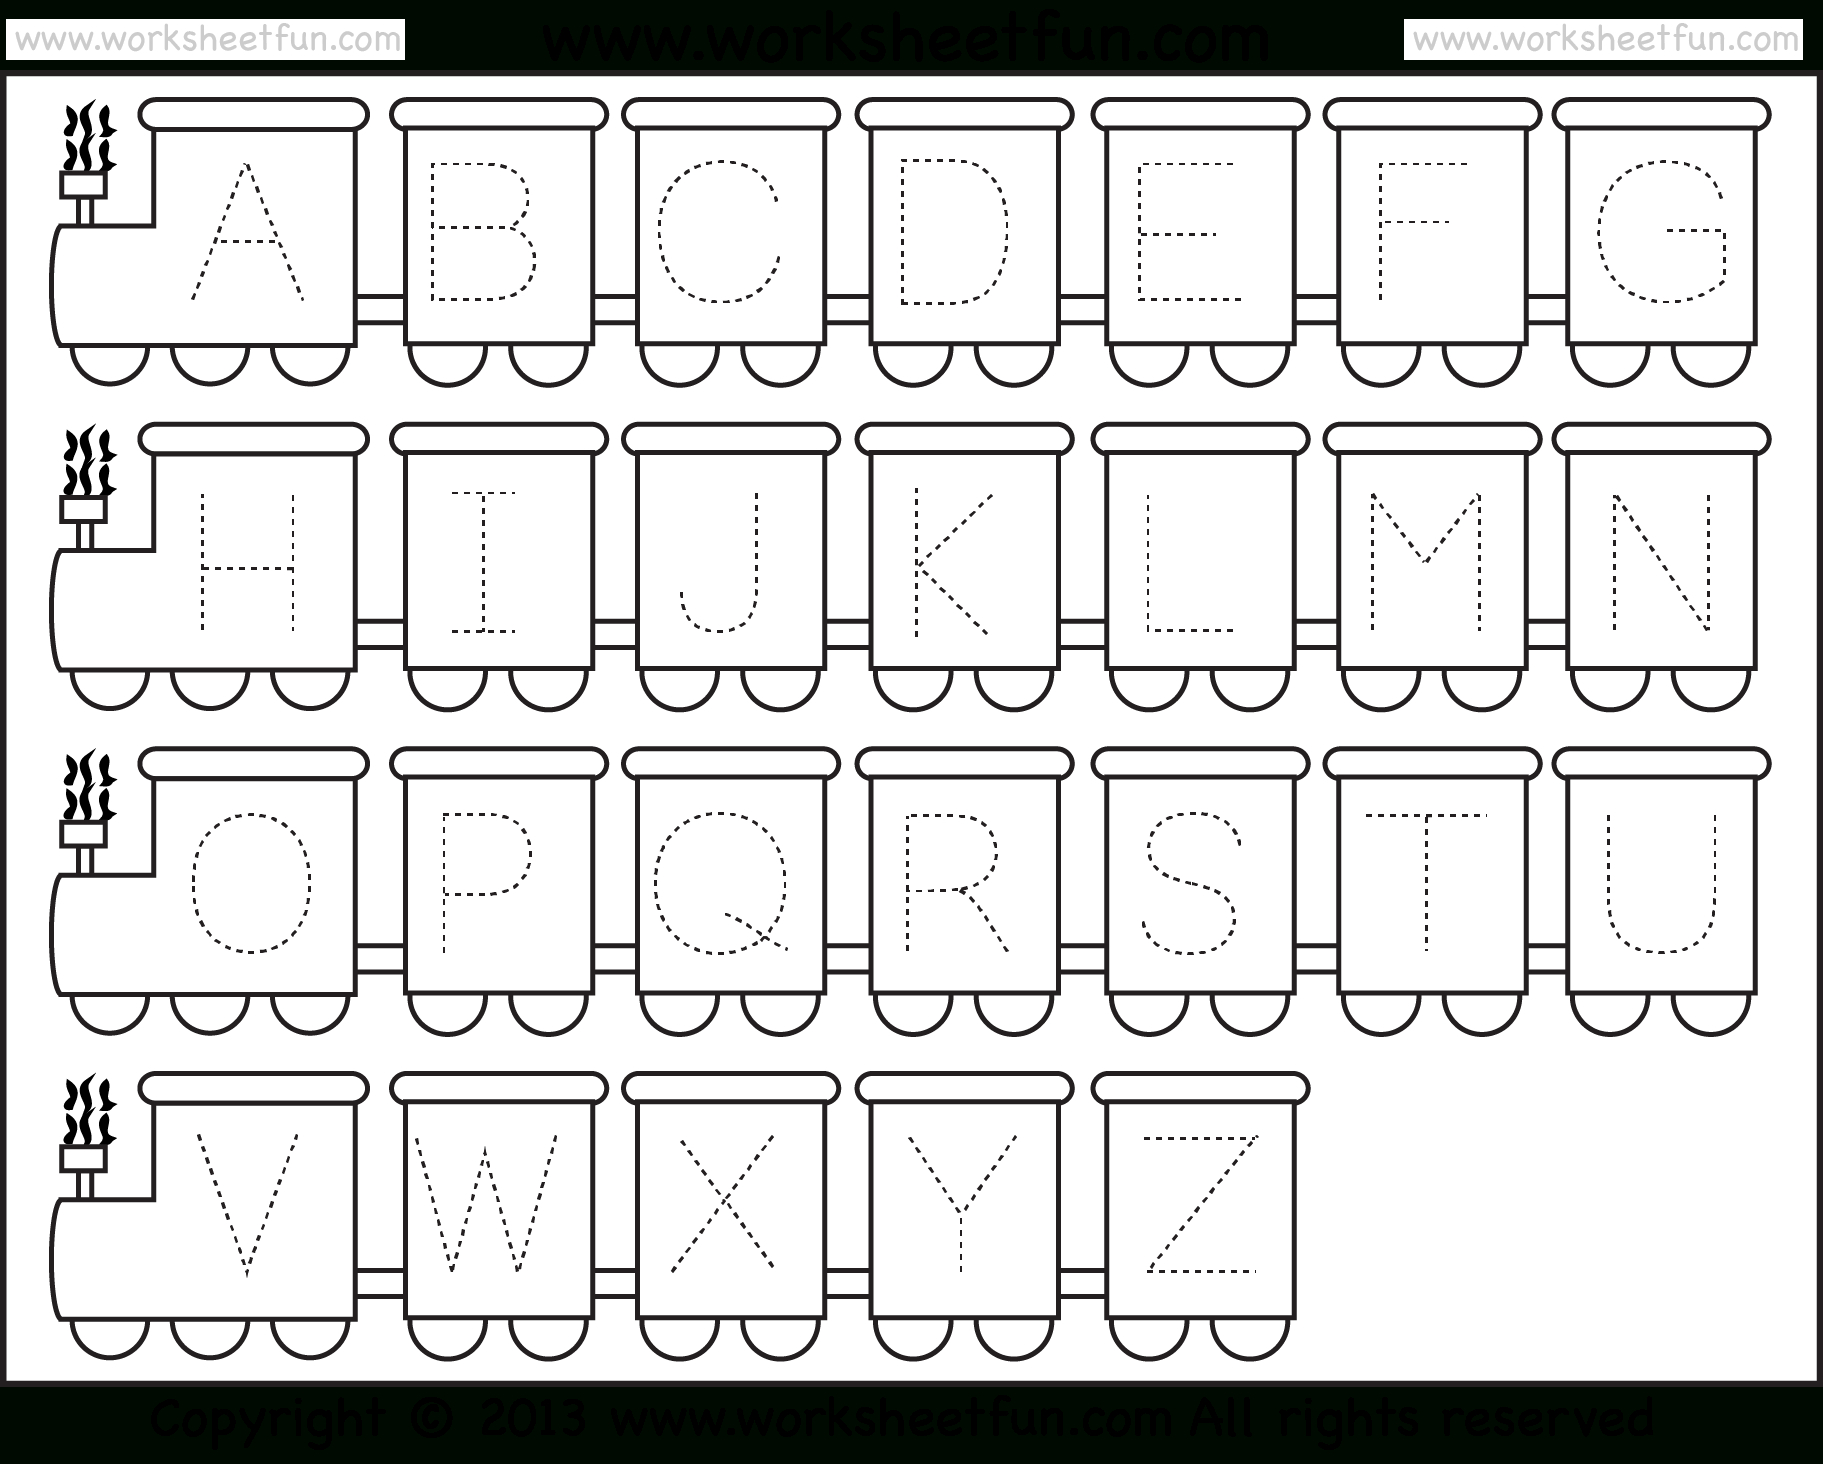 Letter Tracing Worksheet – Train Theme / Free Printable Worksheets - Free Printable Letter Tracing Sheets